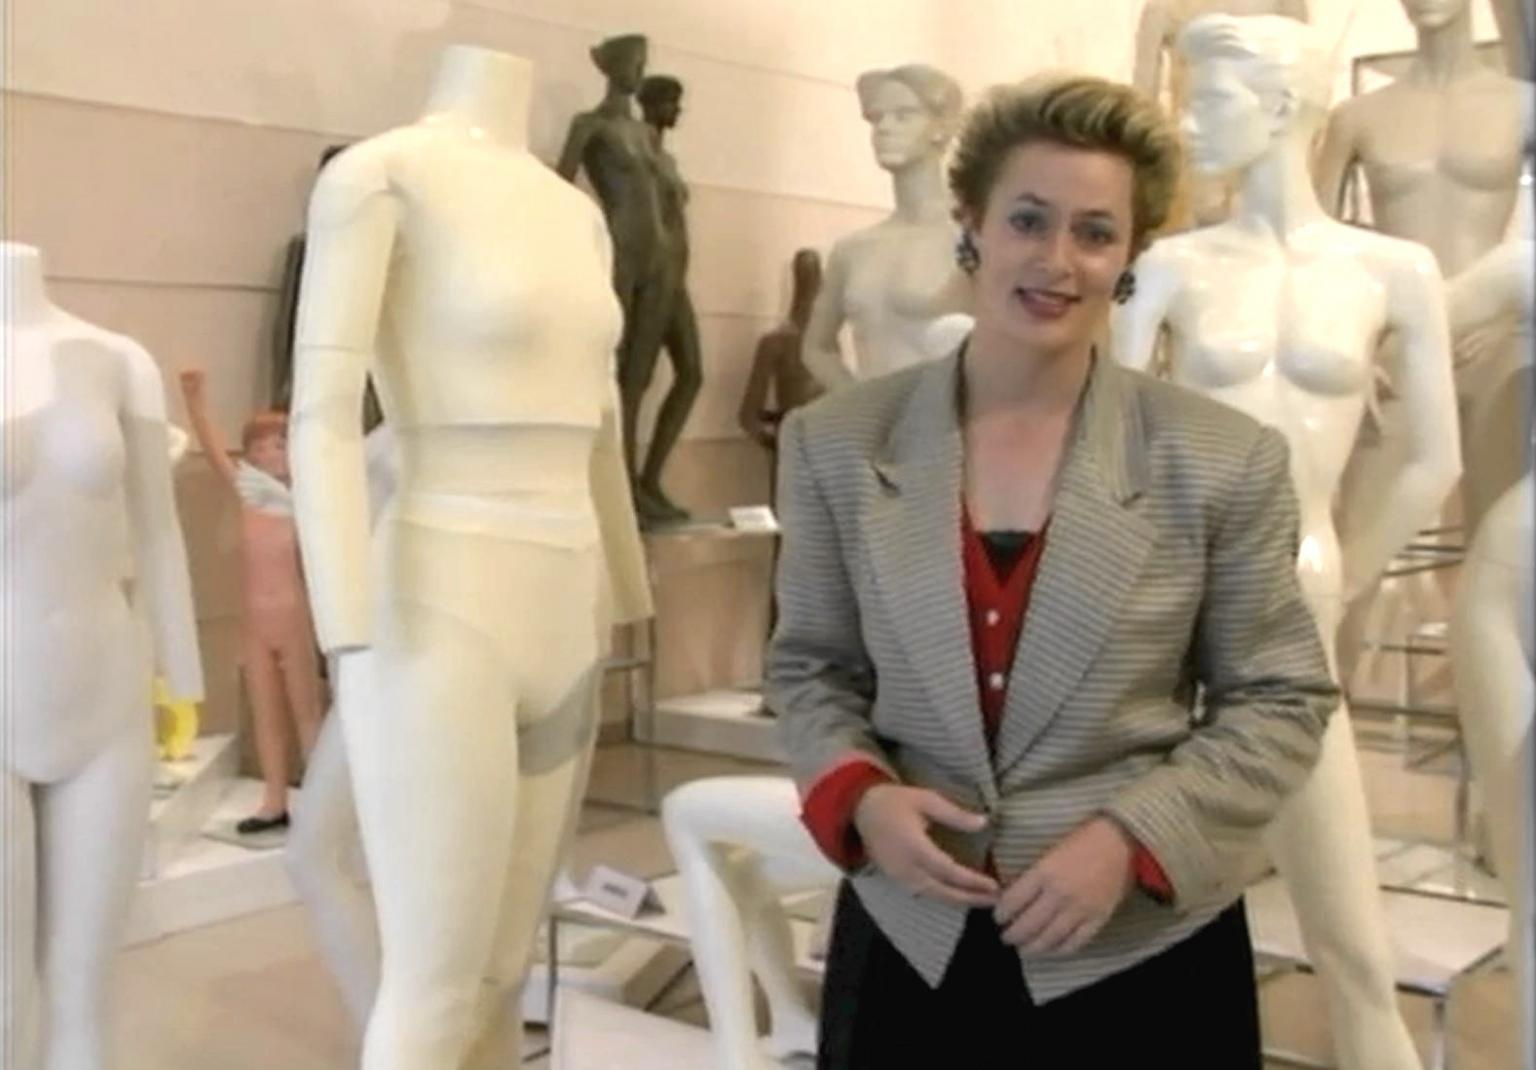 Amanda Keller stands in front a group of mannequins. The mannequins are in various states of undress.